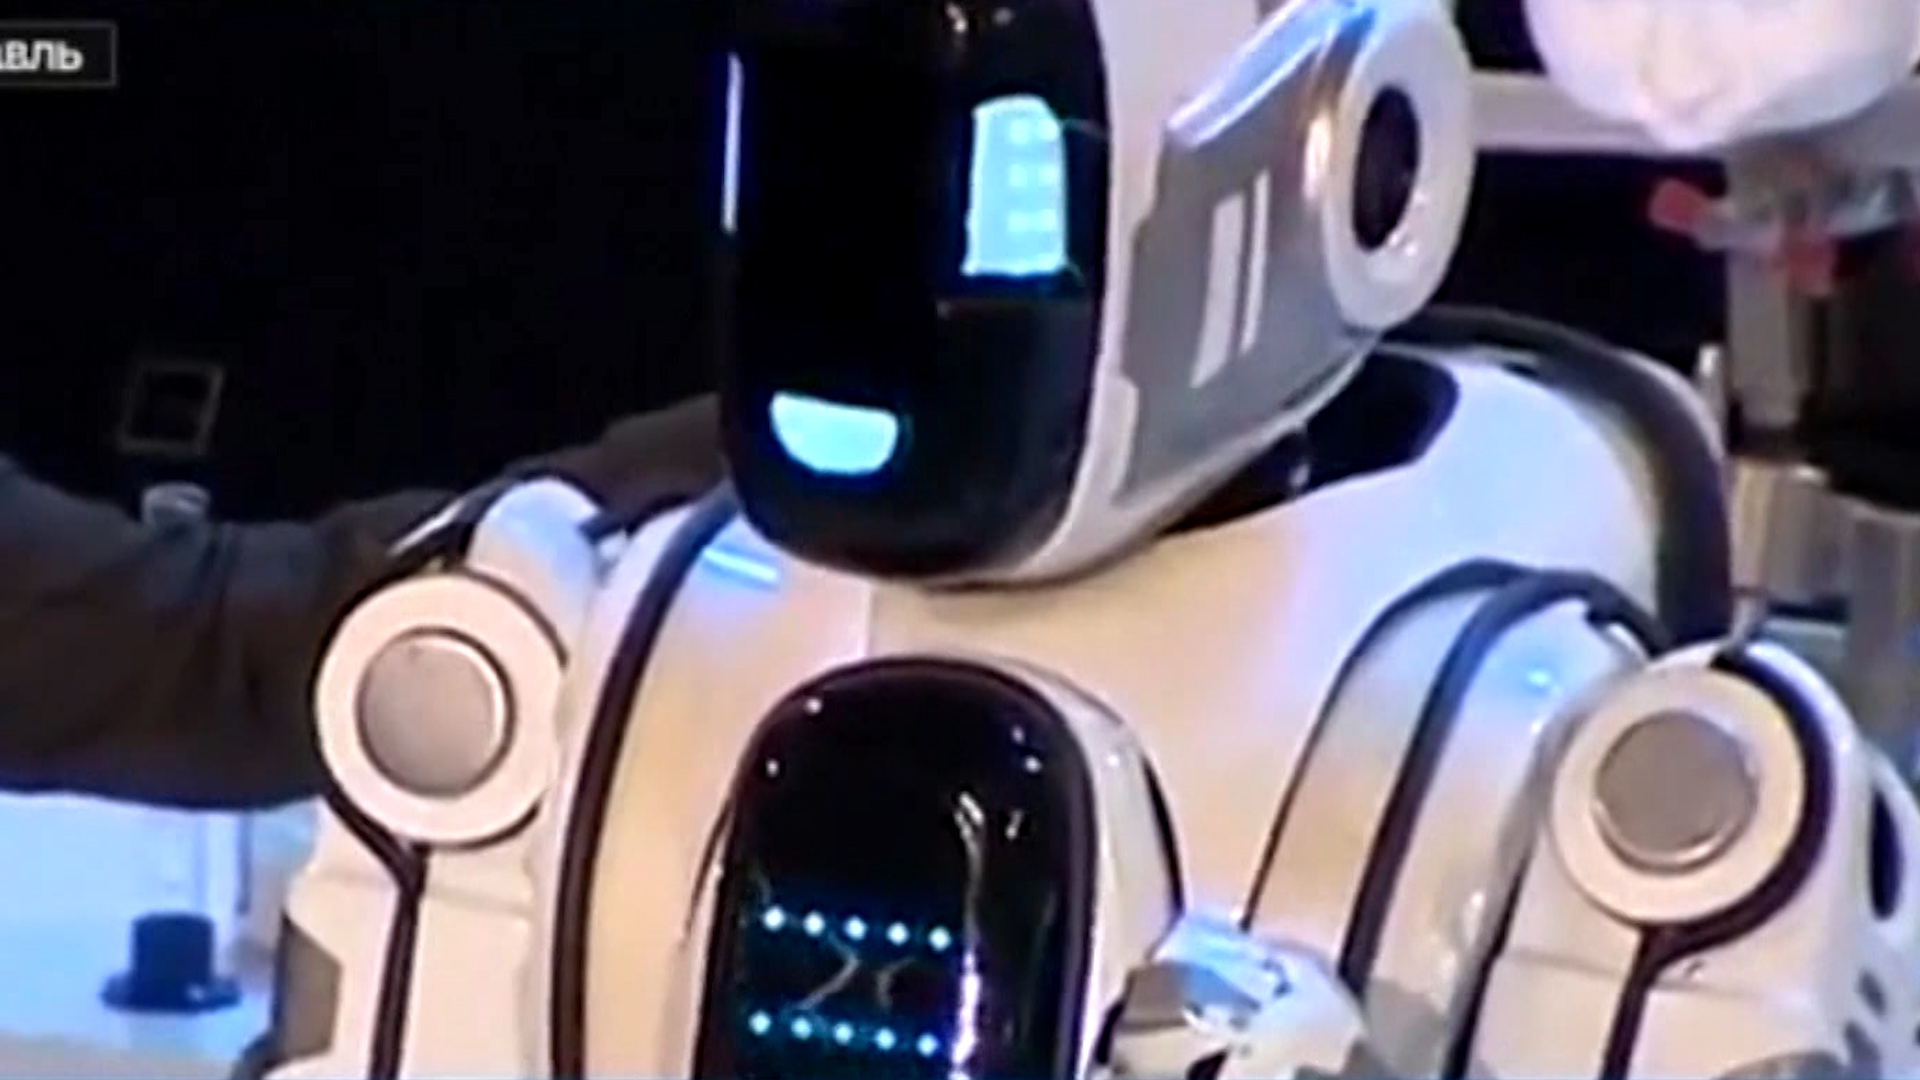 Russian TV lauds guy in robot suit as